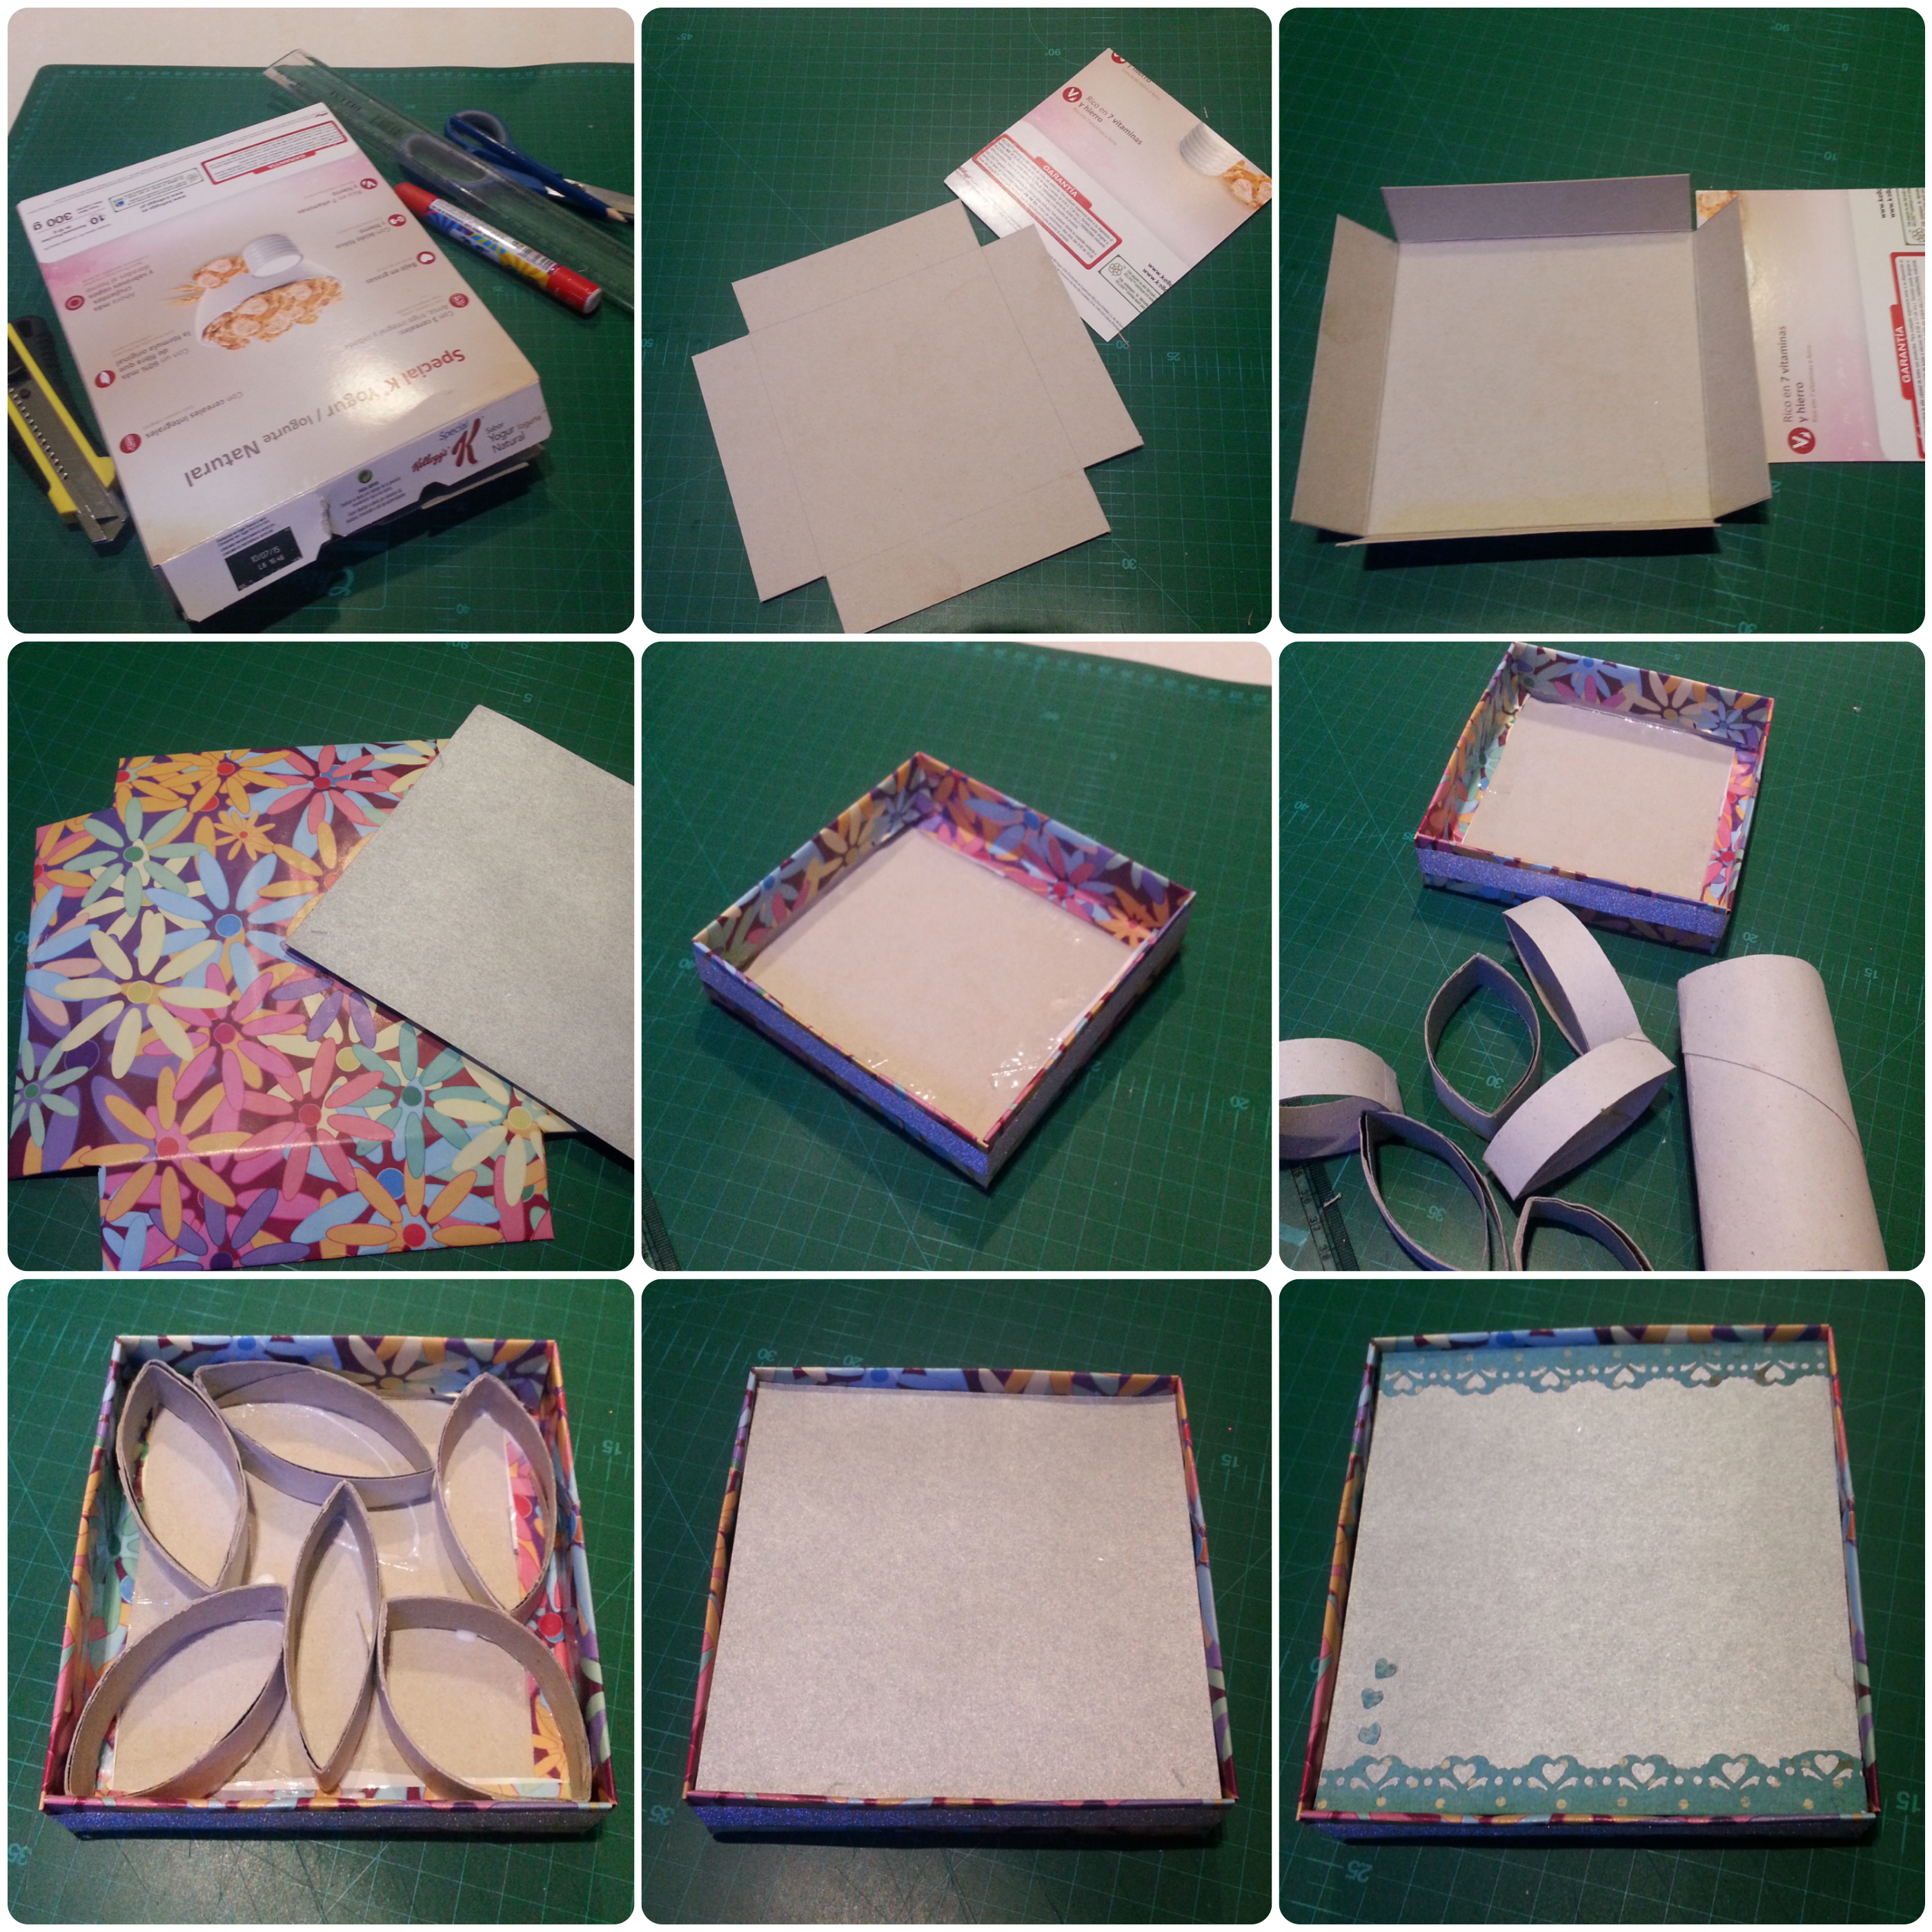 Diy Box Photoframe From Cereal Box Step By Step Volunteer